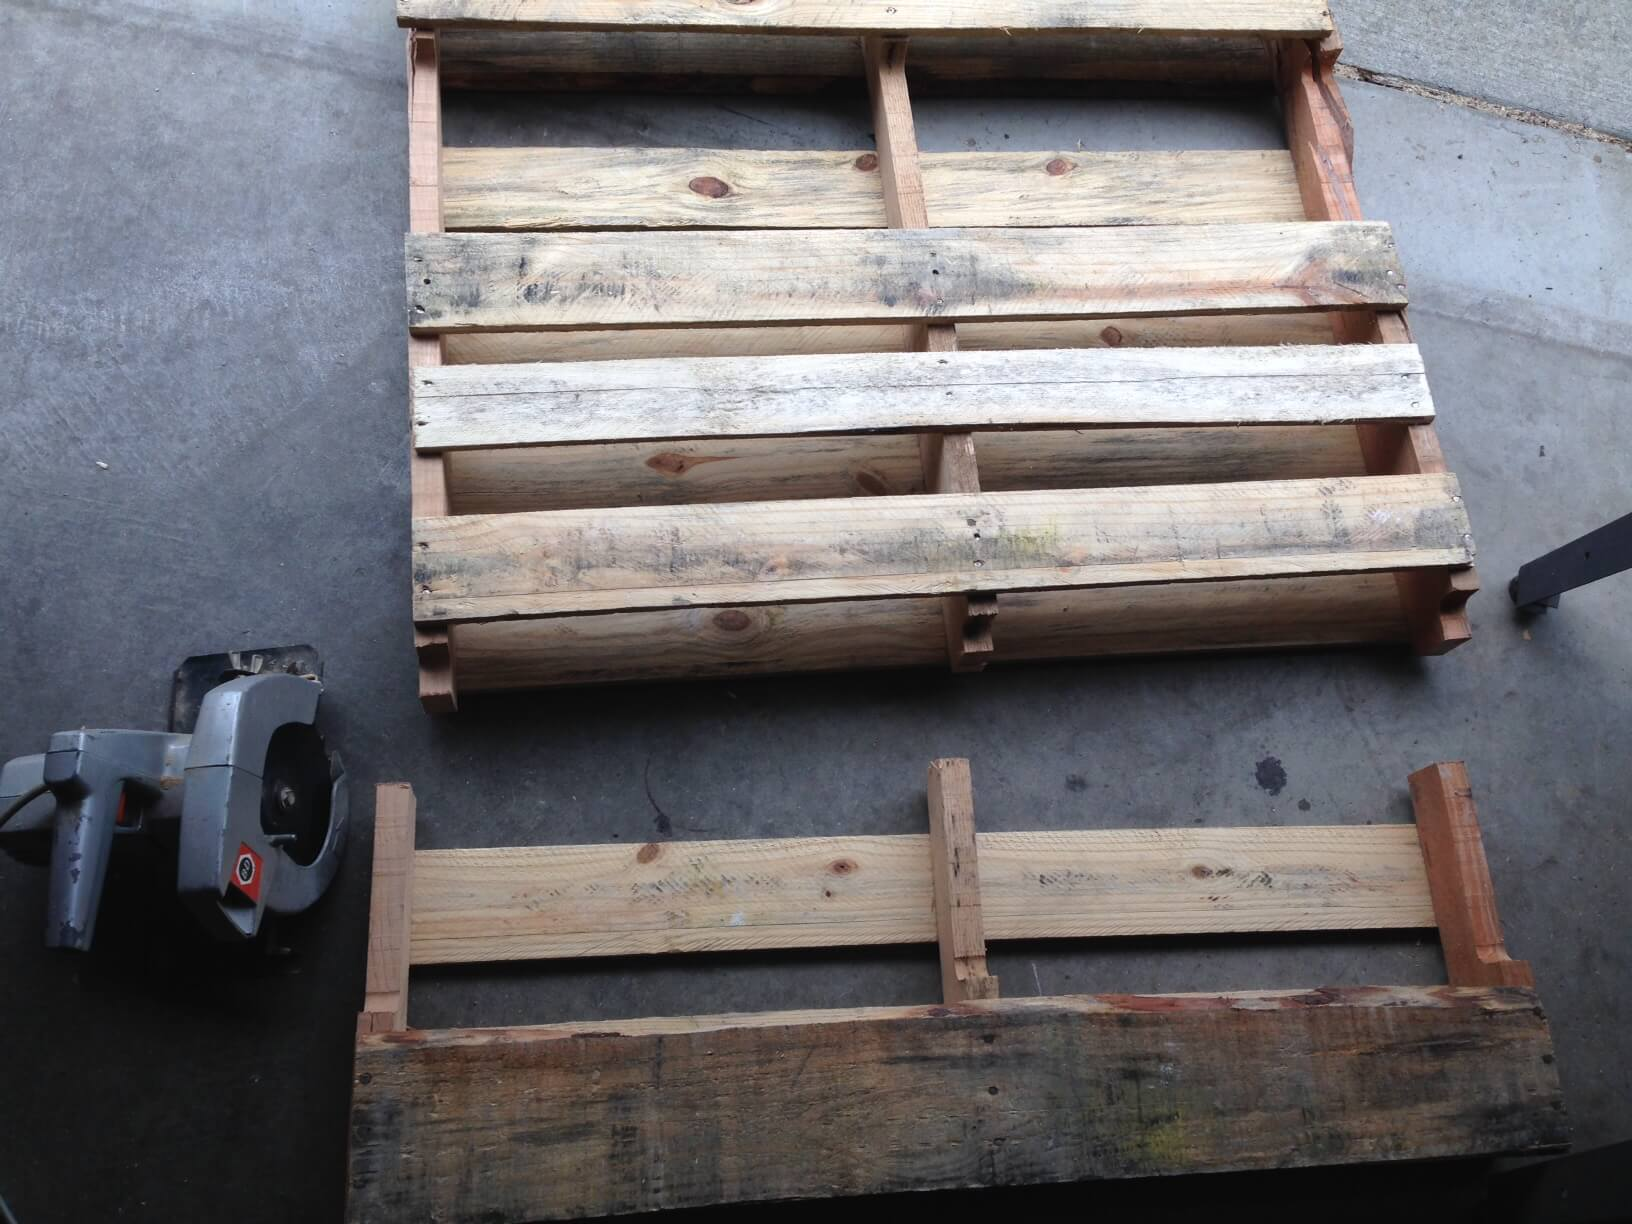 Cutting the pallet